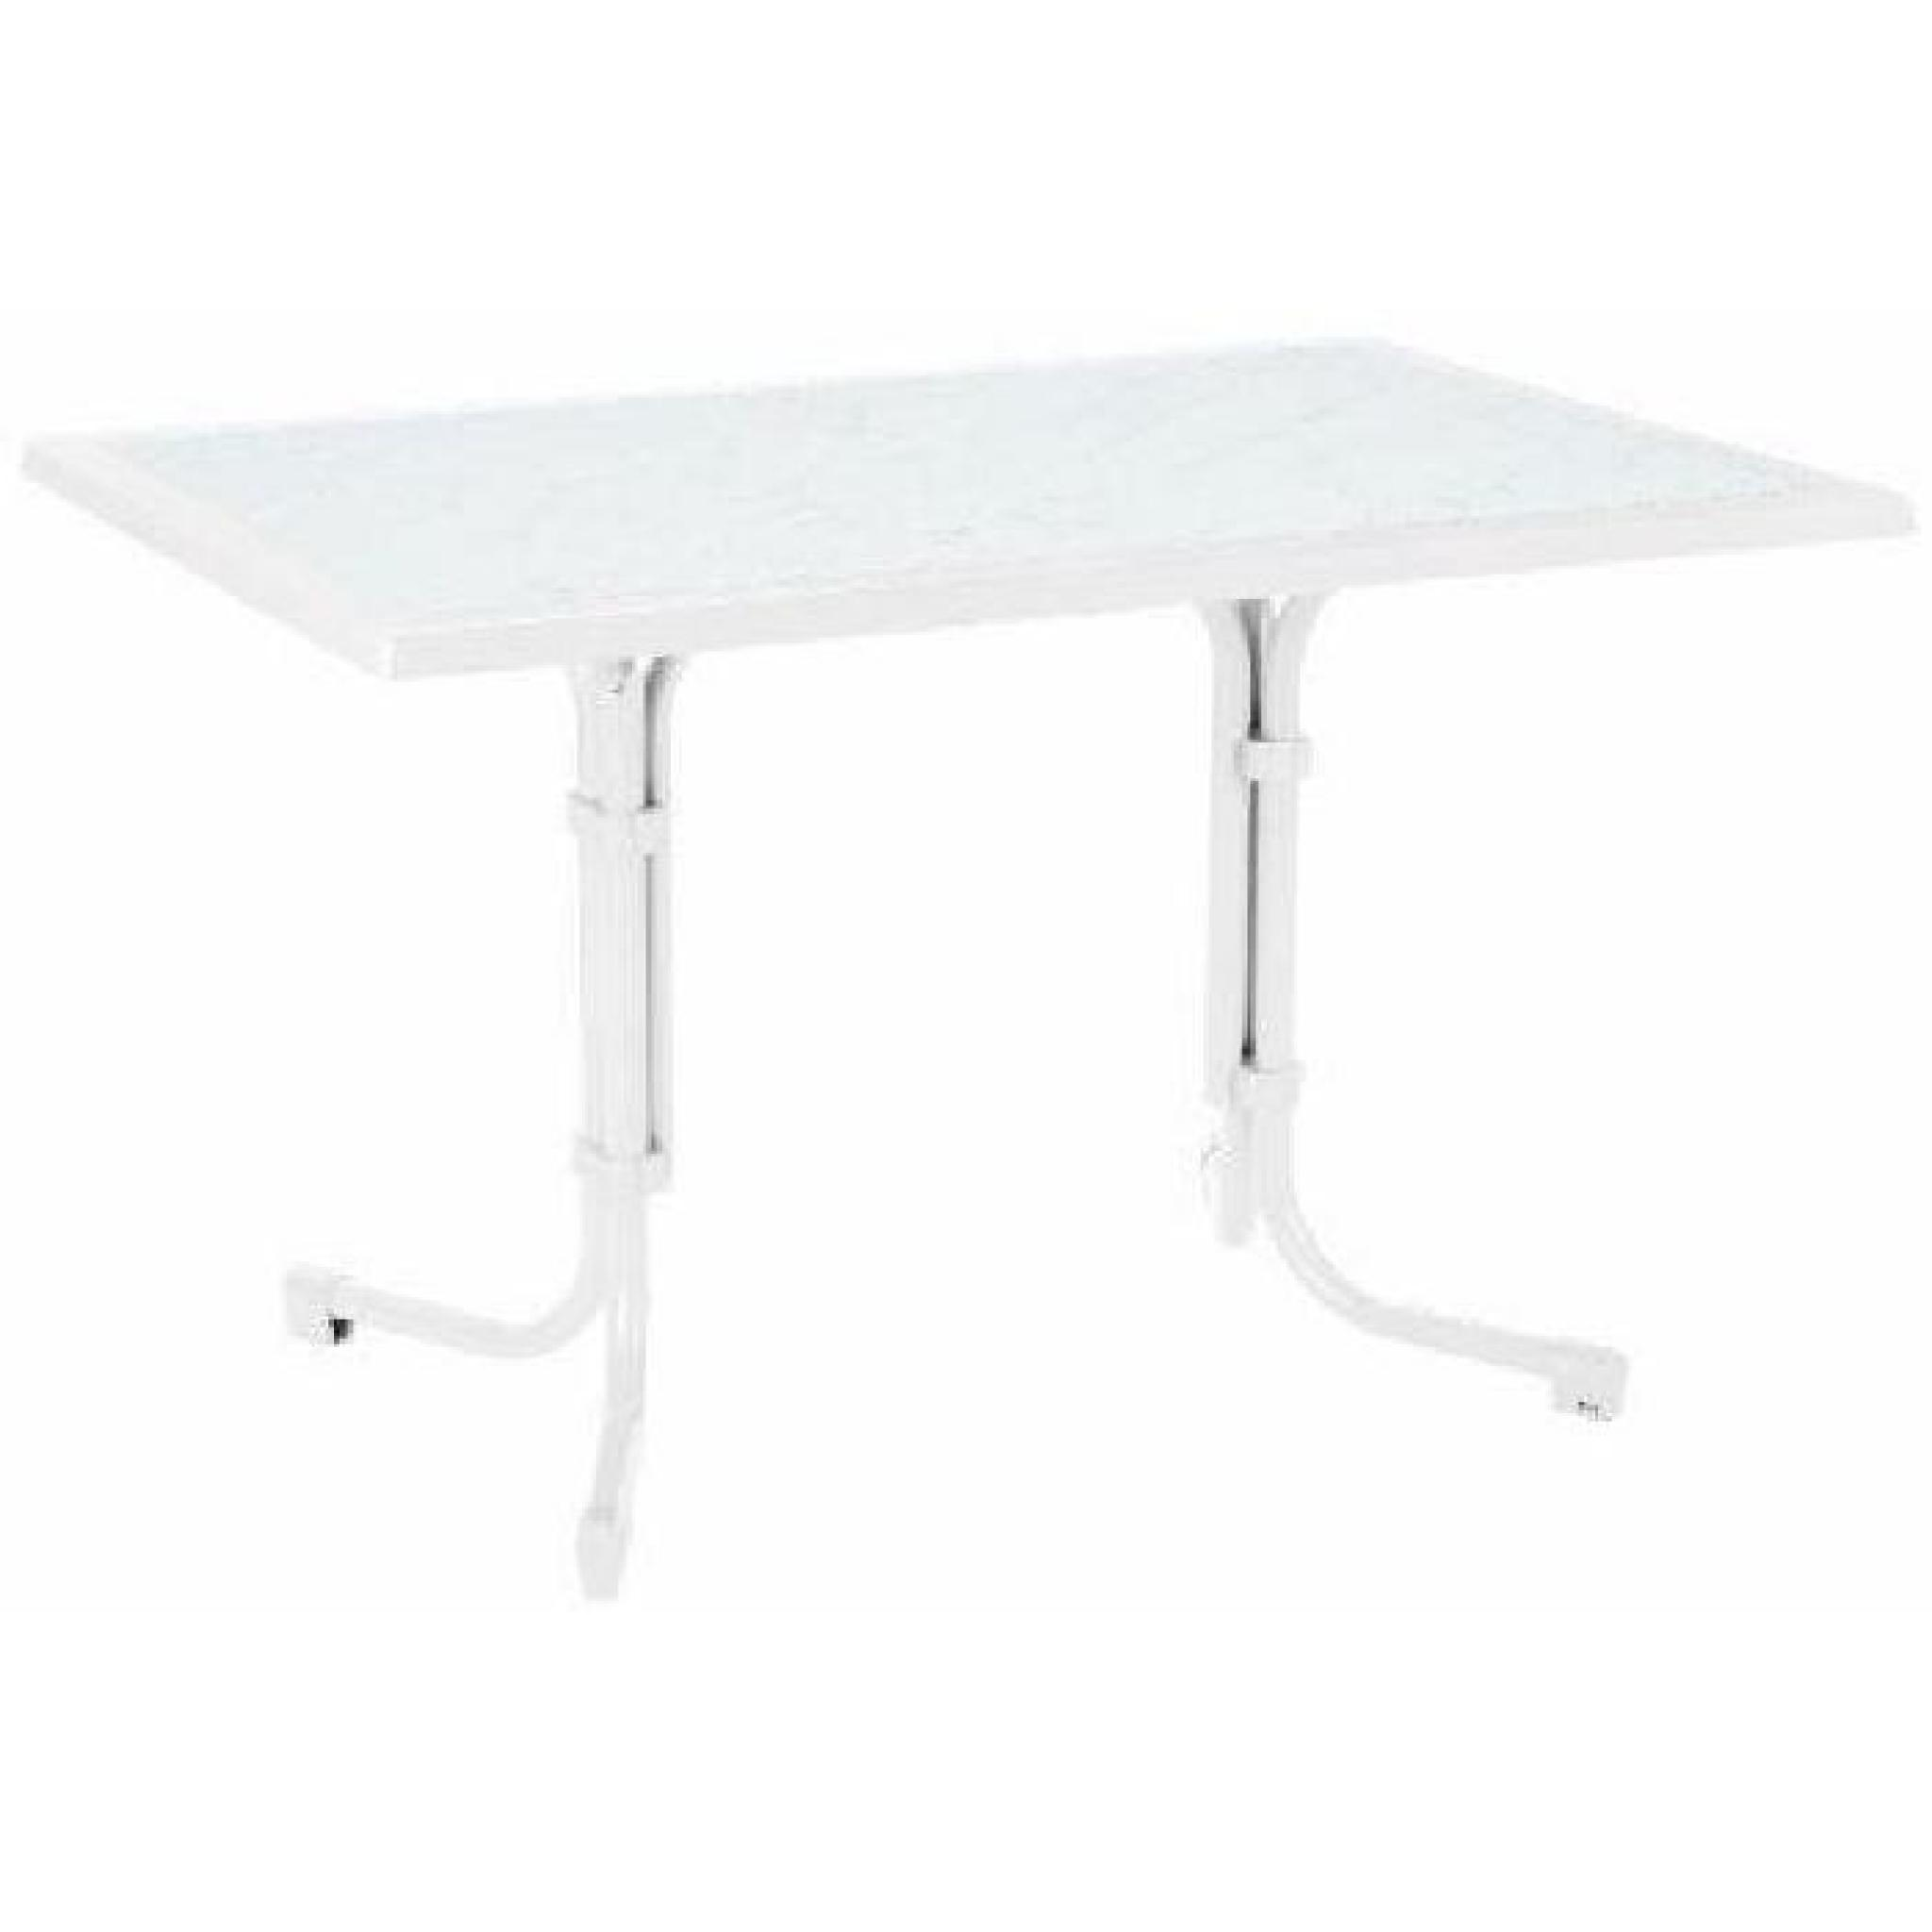 Pied Table Pliant Best 26531200 Primo Table Pliante Carrée à Pied